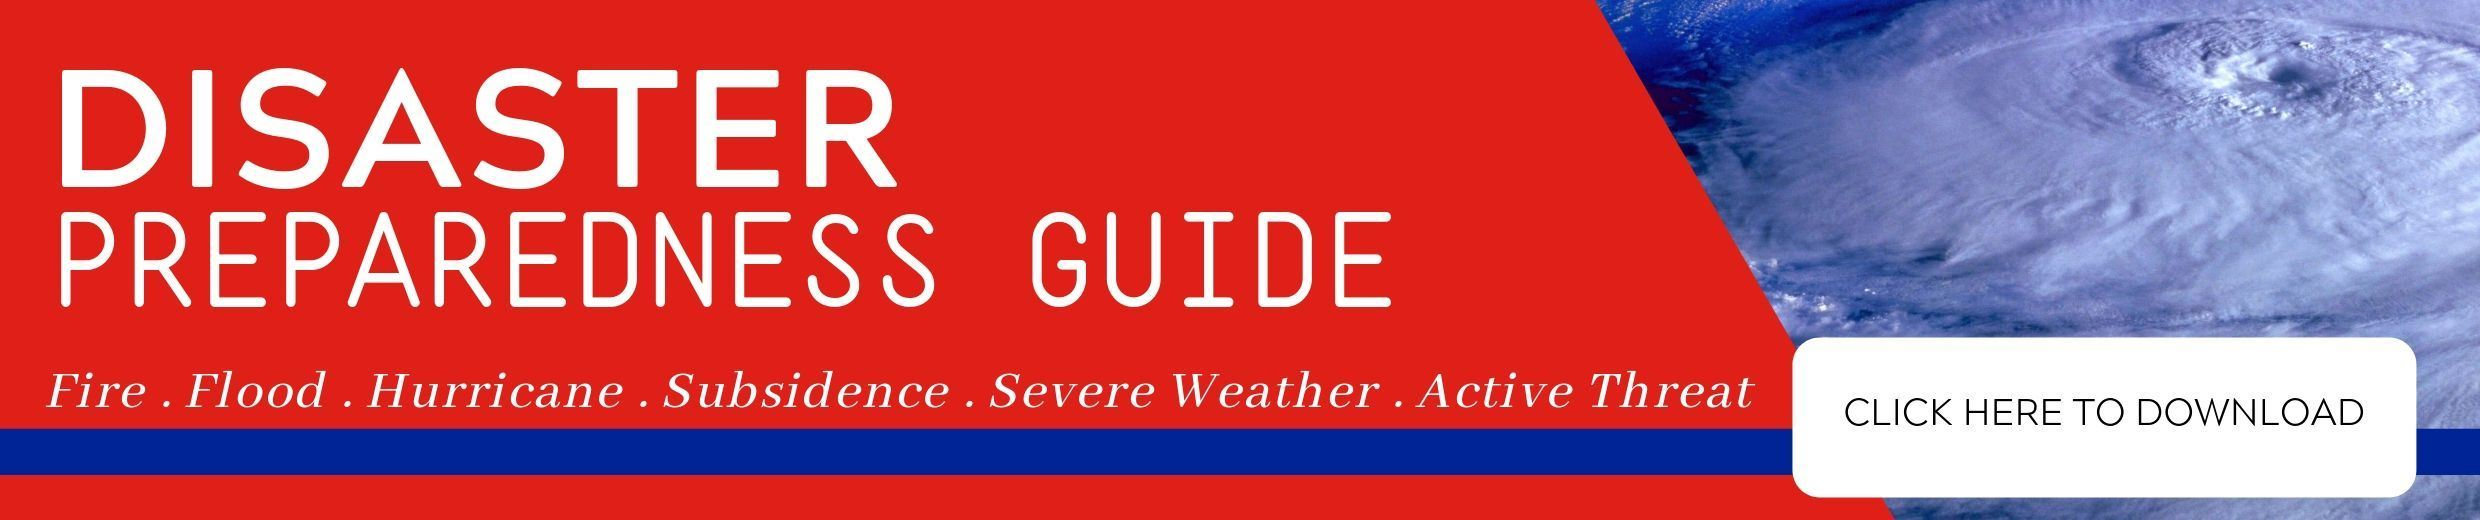 Disaster Prep Guide Opens in new window